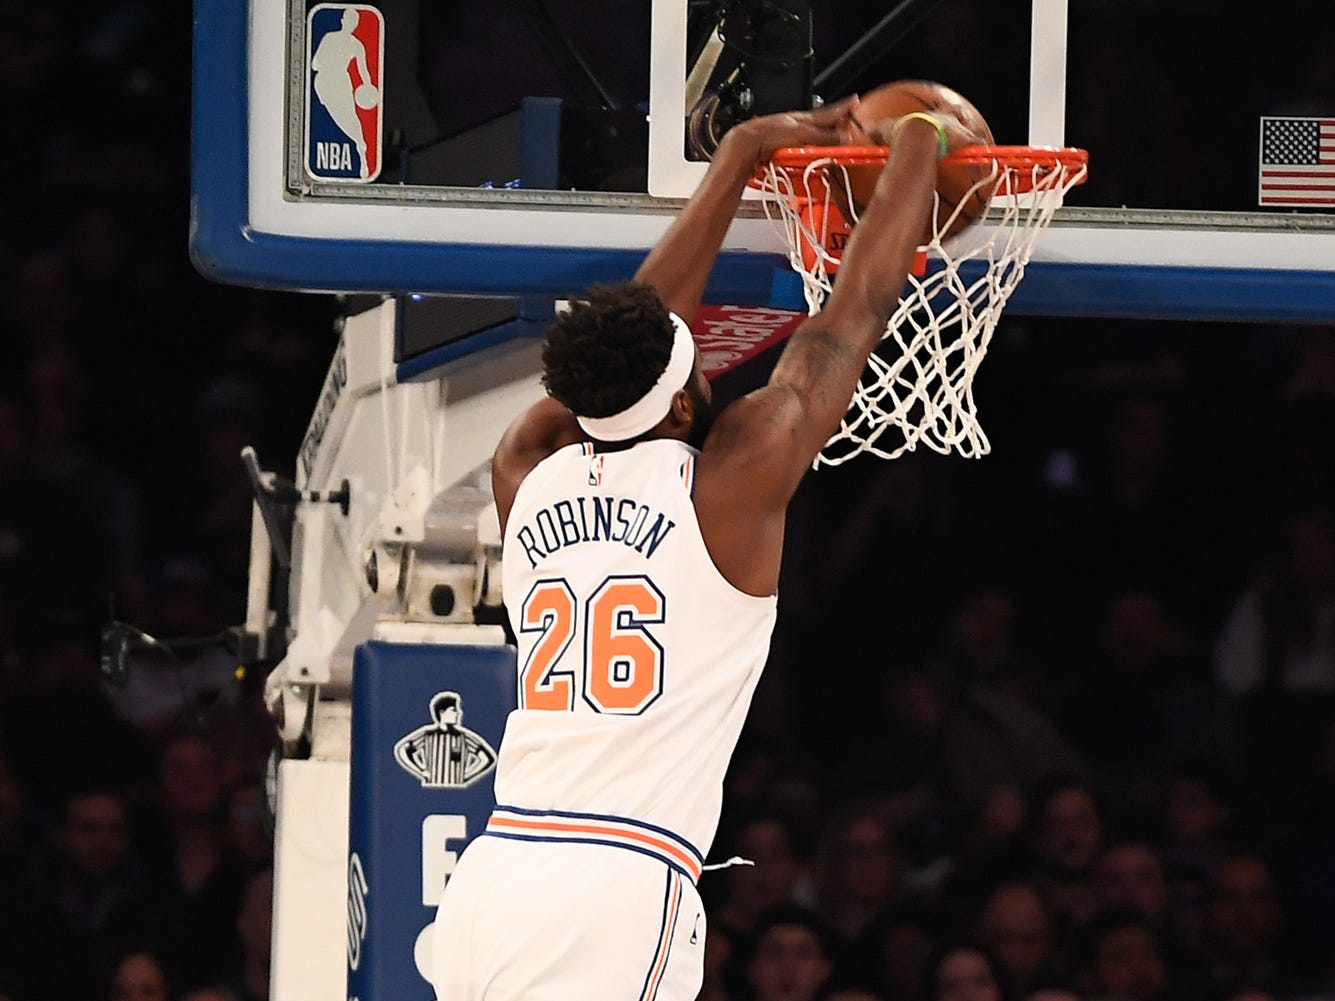 Nov 23, 2018; New York, NY, USA; New York Knicks center Mitchell Robinson (26) dunks the ball in the first quarter against the New Orleans Pelicans at Madison Square Garden.